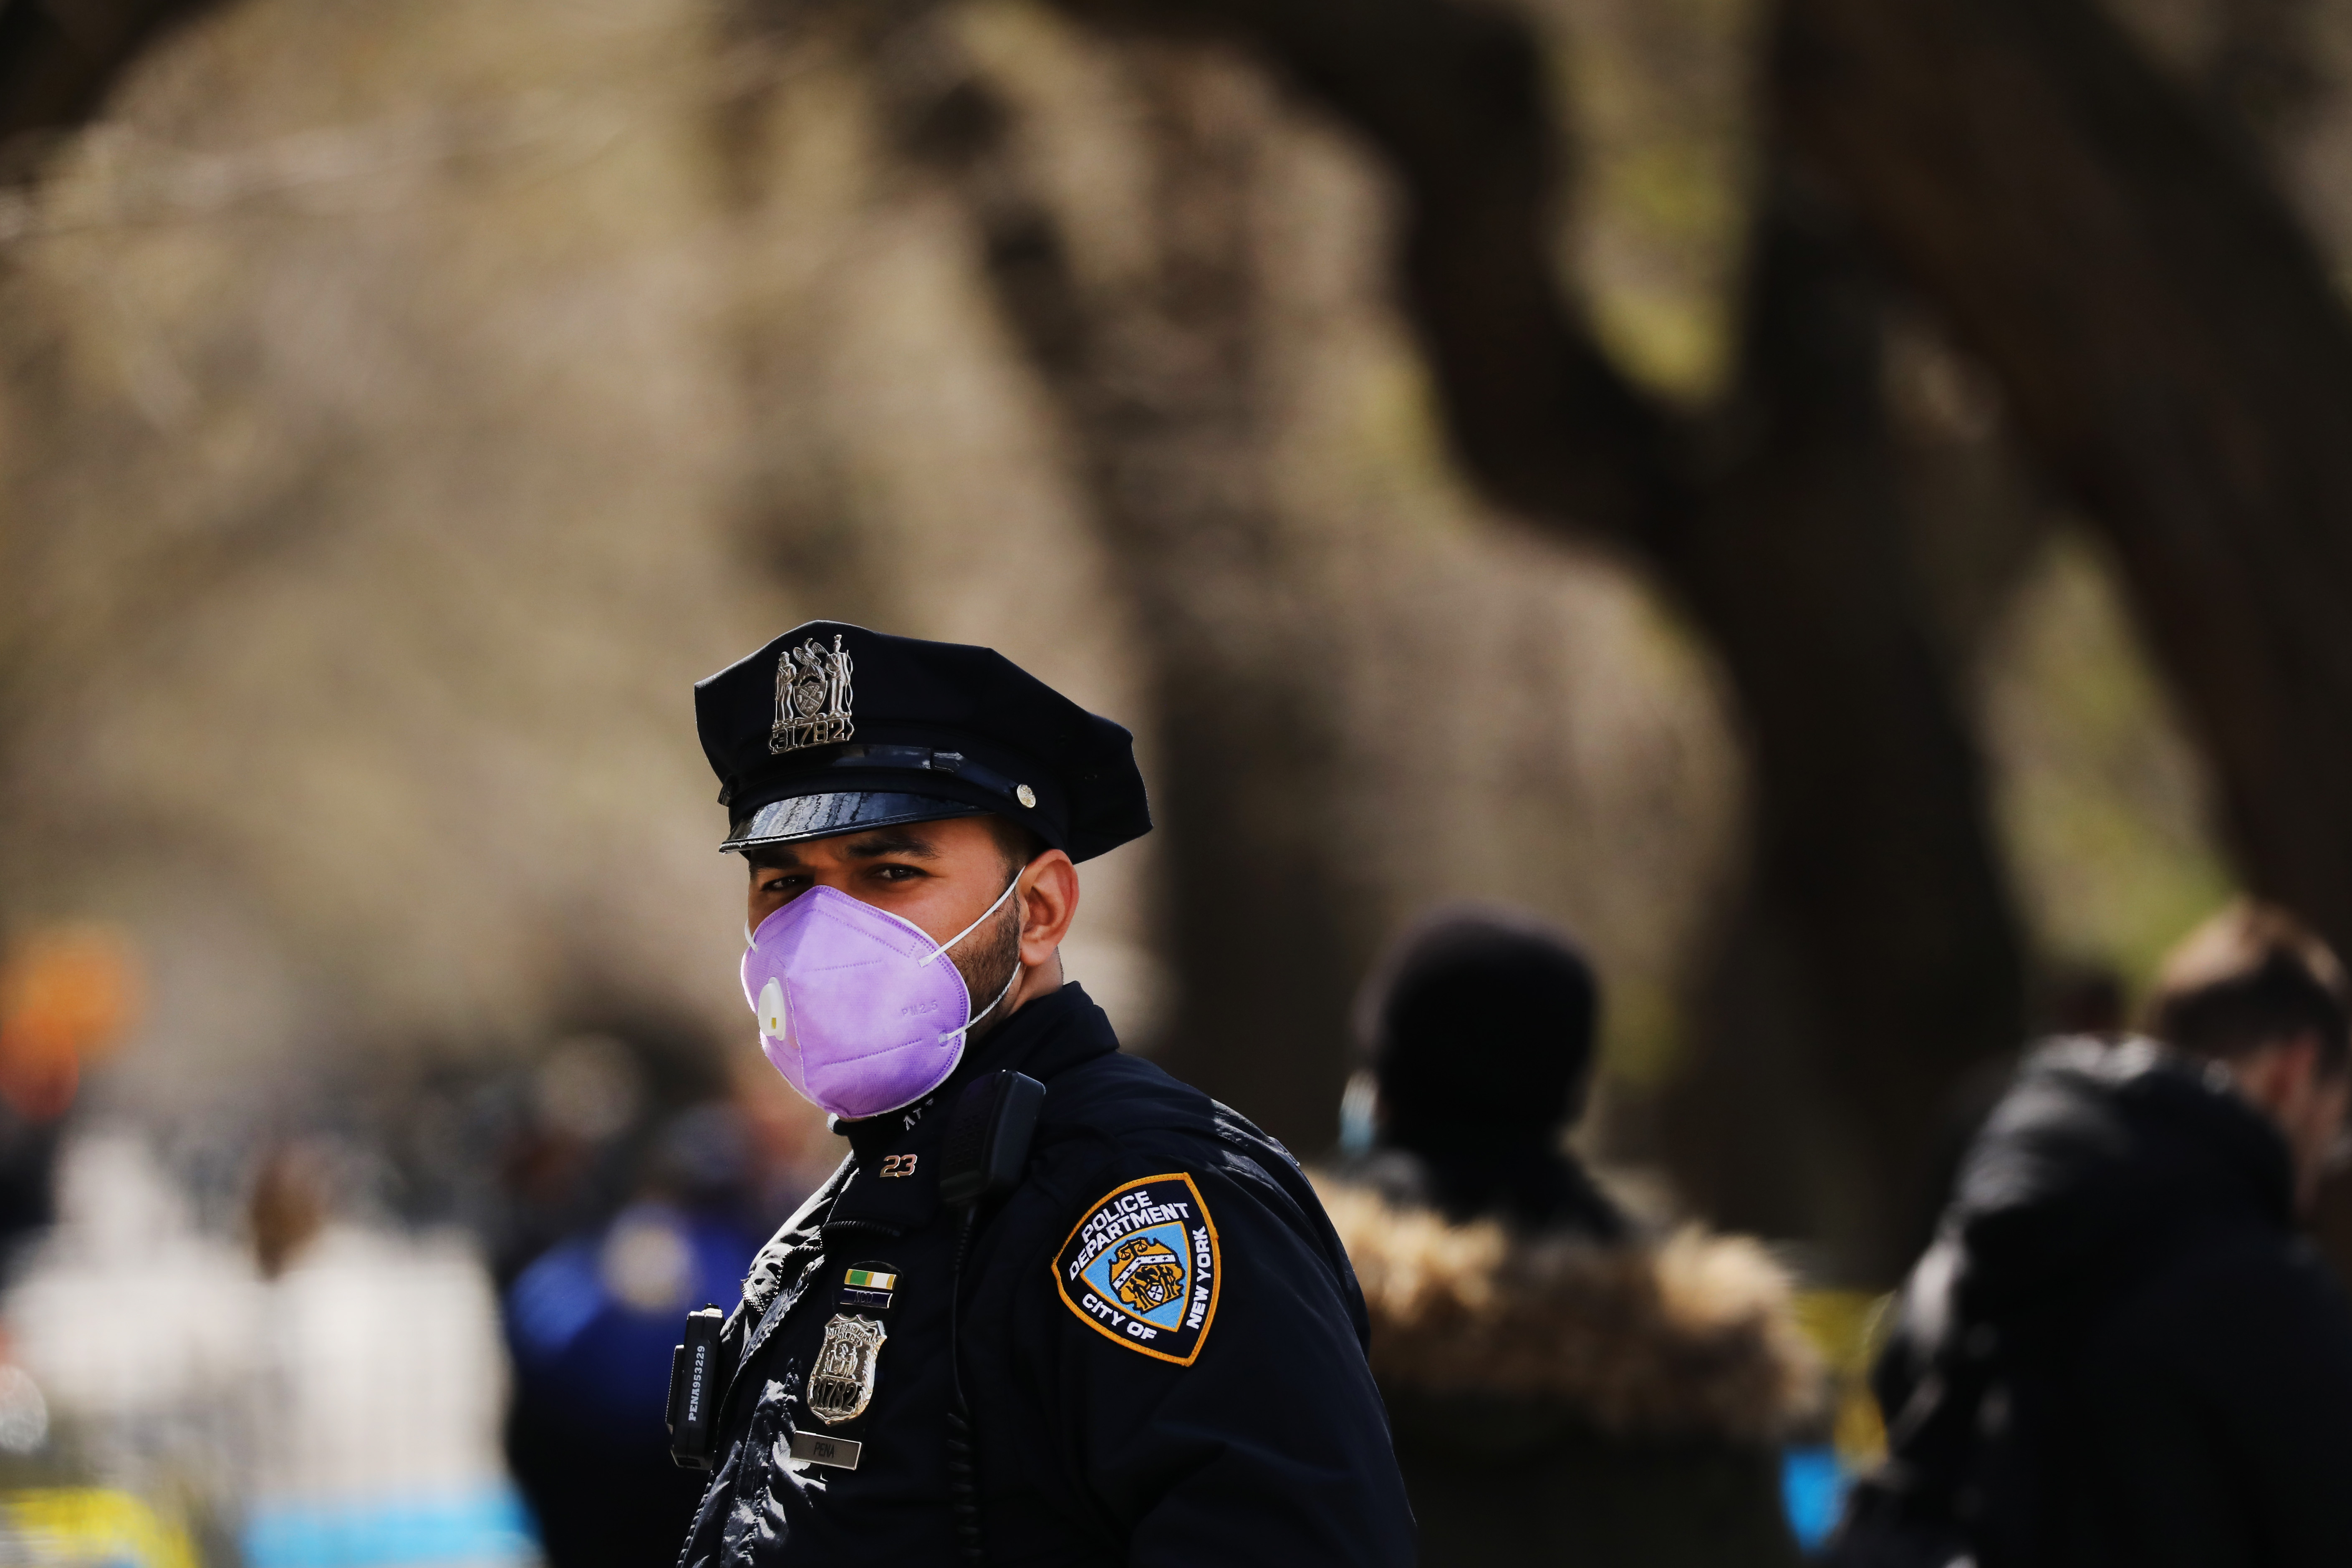 A police officer stands outside of Mount Sinai Hospital on April 01, 2020 in New York City.